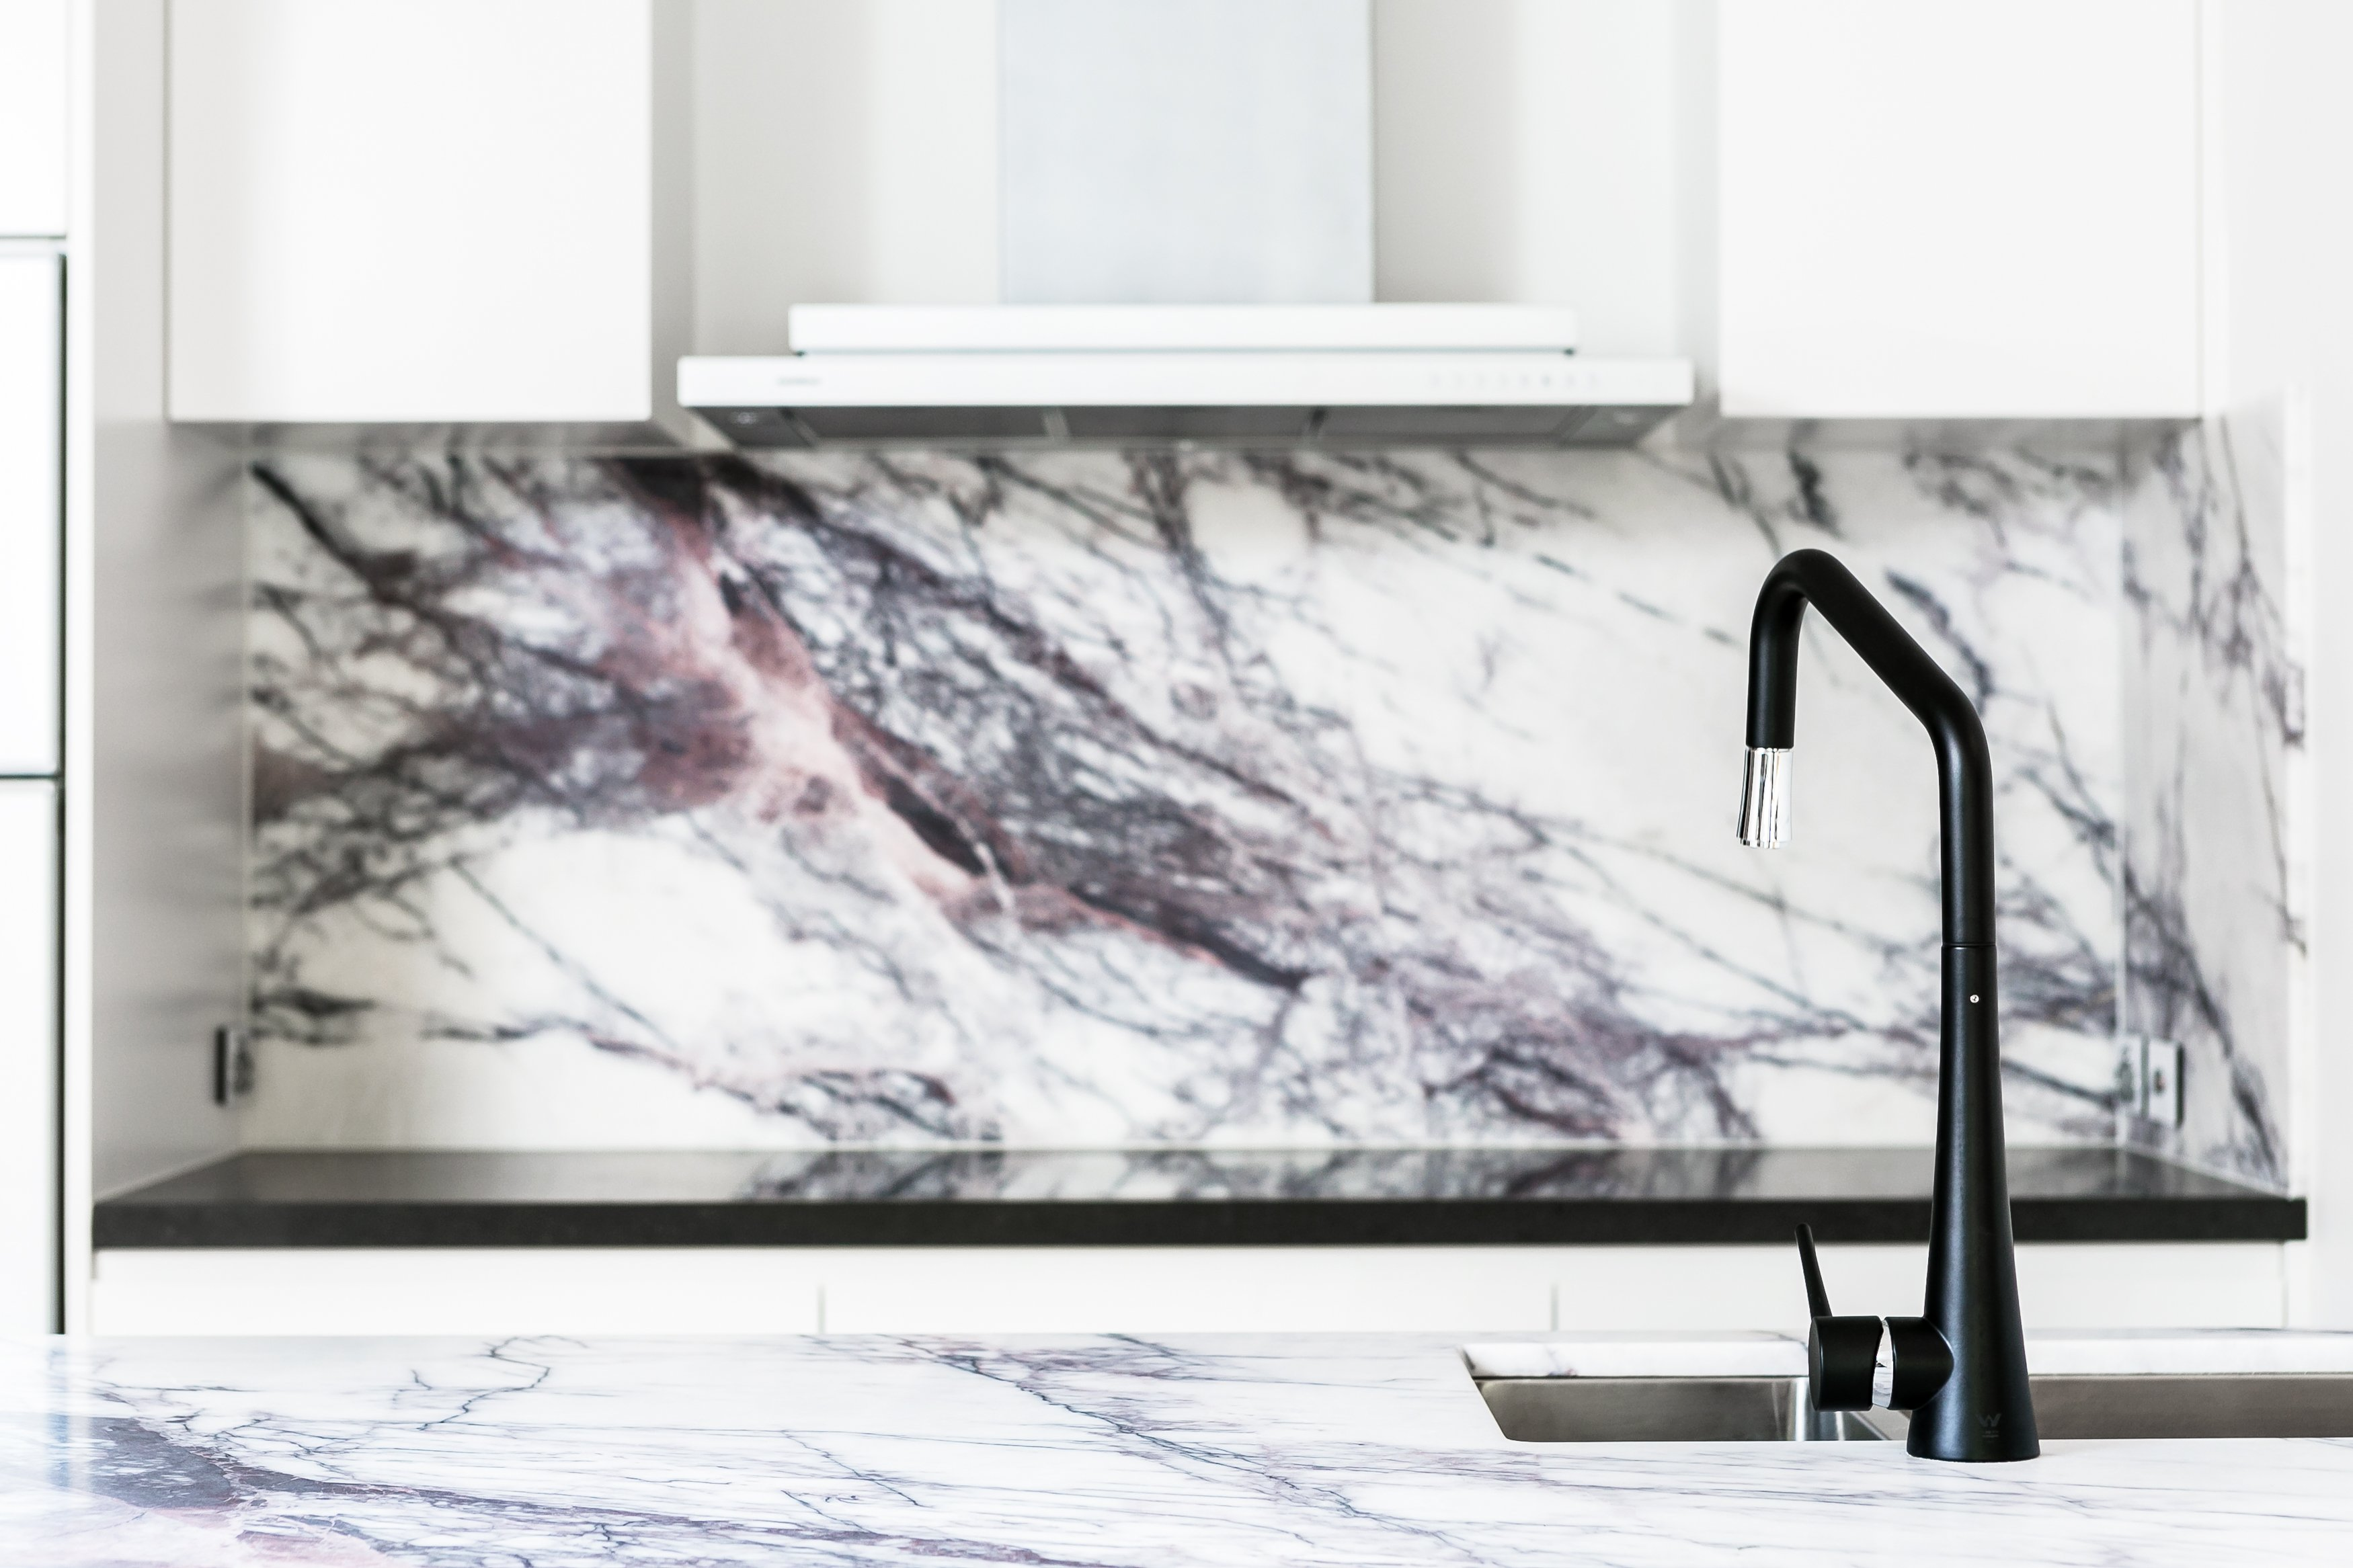 The main countertop and backsplash share a bold, white and black granite slab that highlights the minimalist white nature of the kitchen, contrasting with the clean lines.